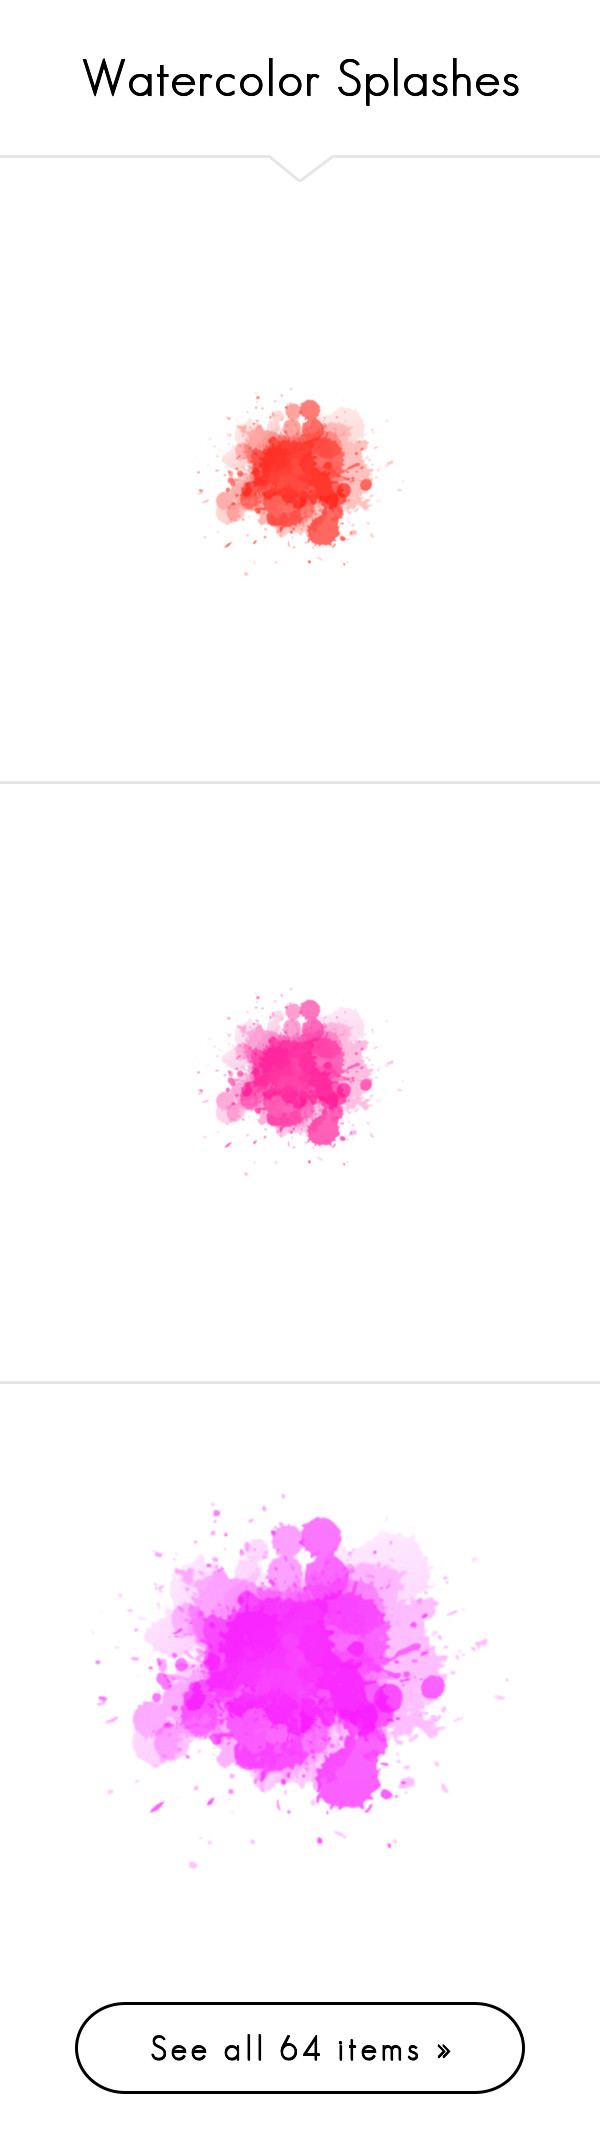 watercolor splashes by neamisra liked on polyvore featuring polypaint splash effects paint. Black Bedroom Furniture Sets. Home Design Ideas